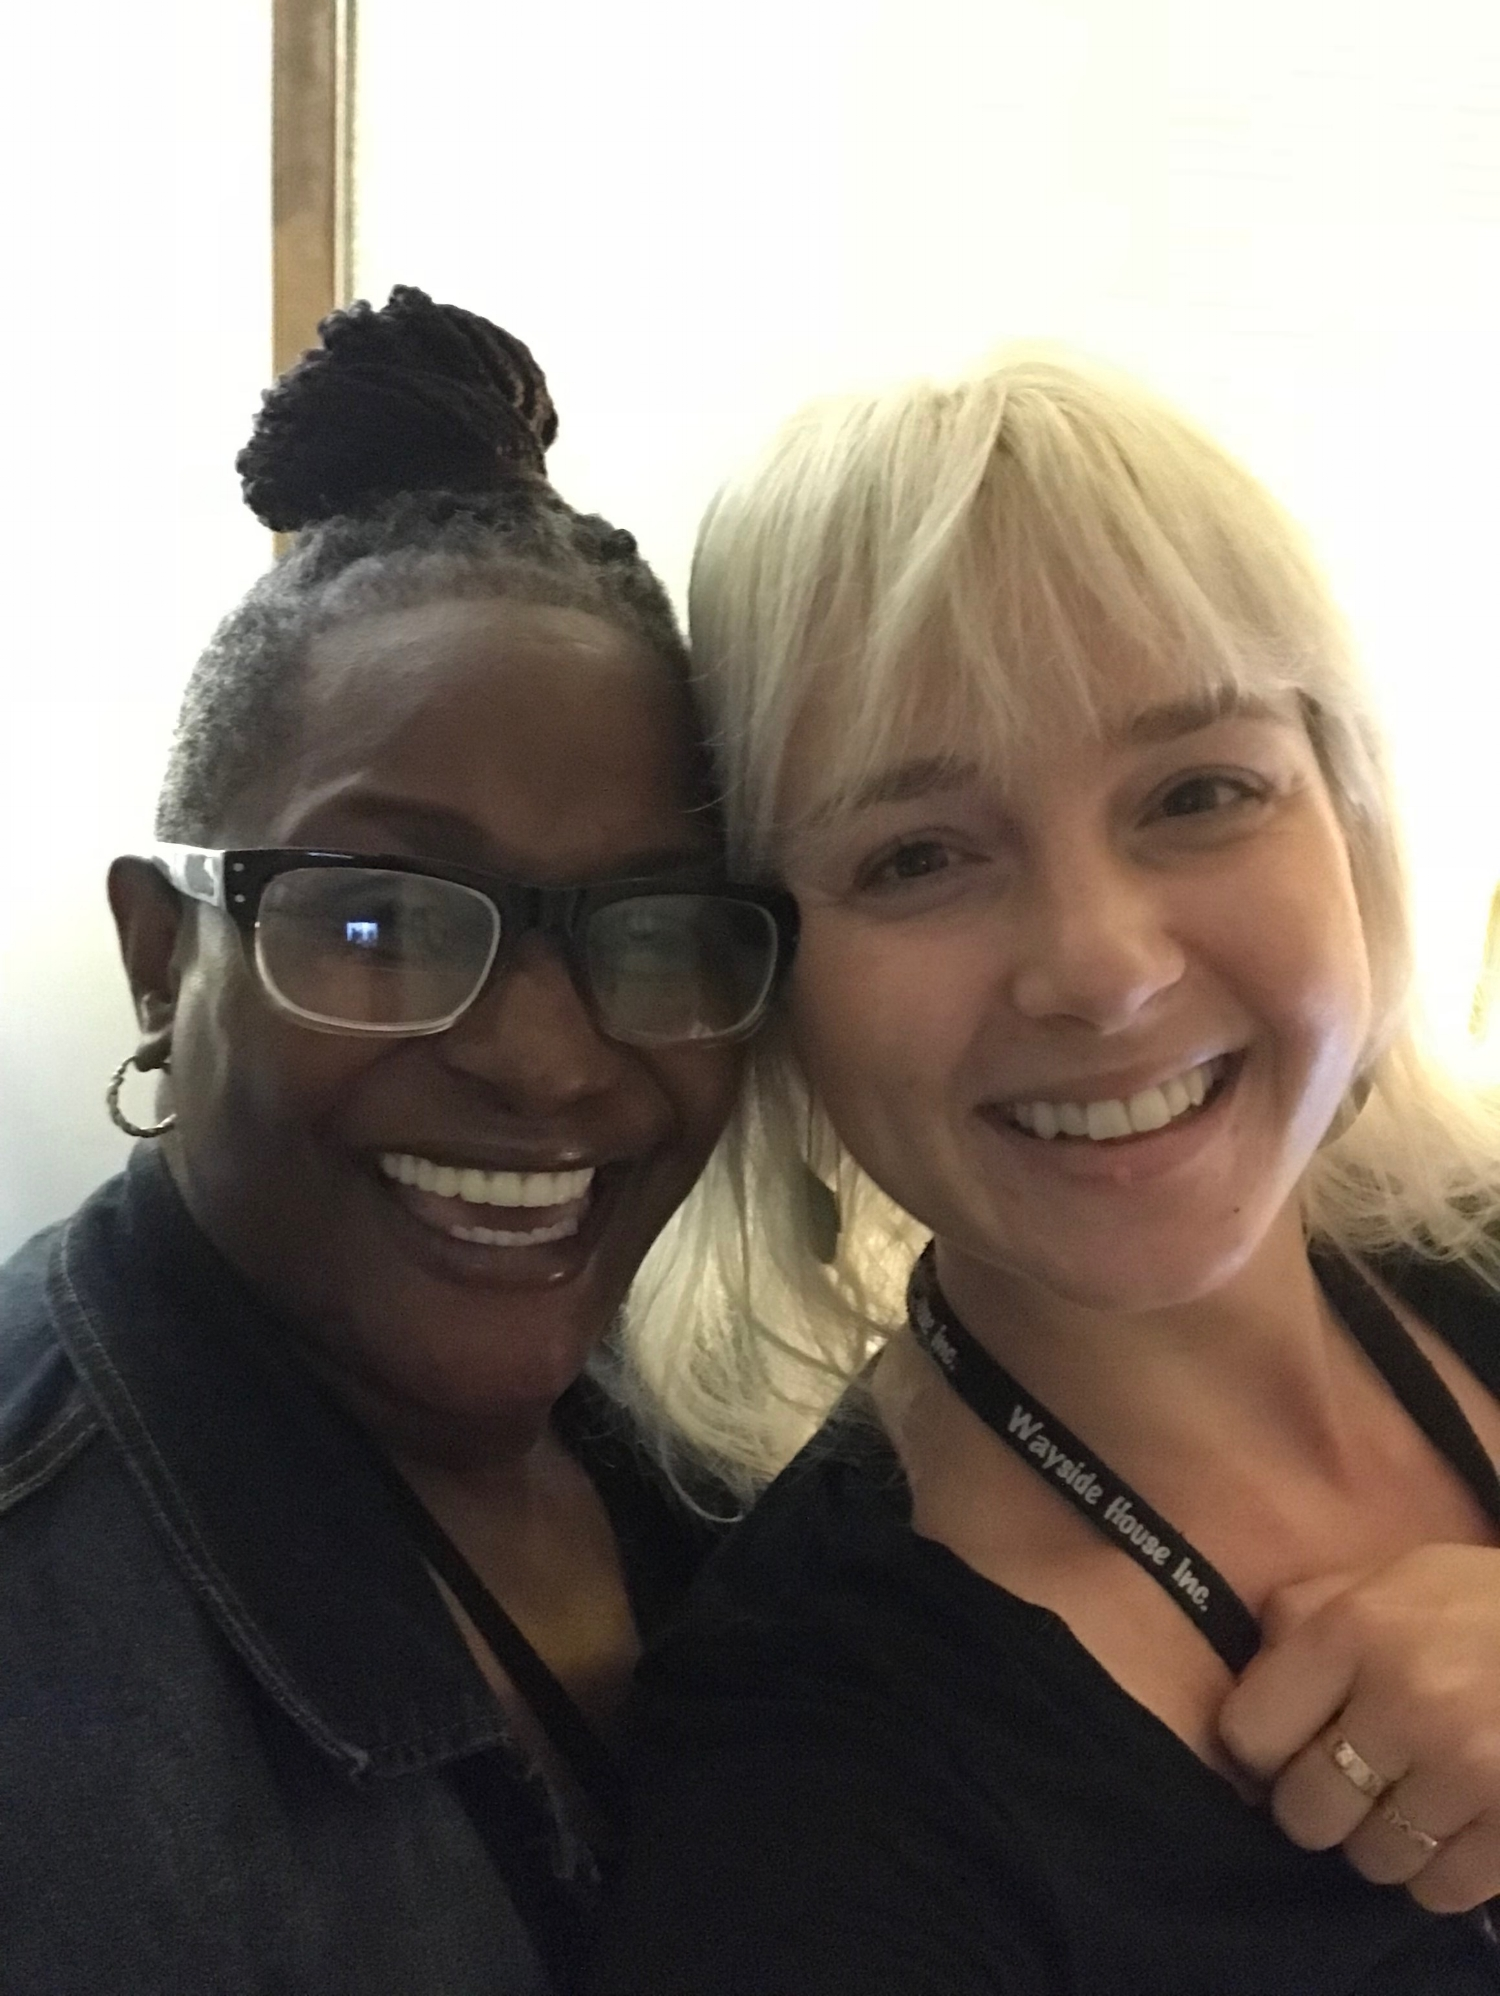 Lucia (pictured on the right) with her co-worker and fellow Peer Recovery Specialist, Jennifer Wright.